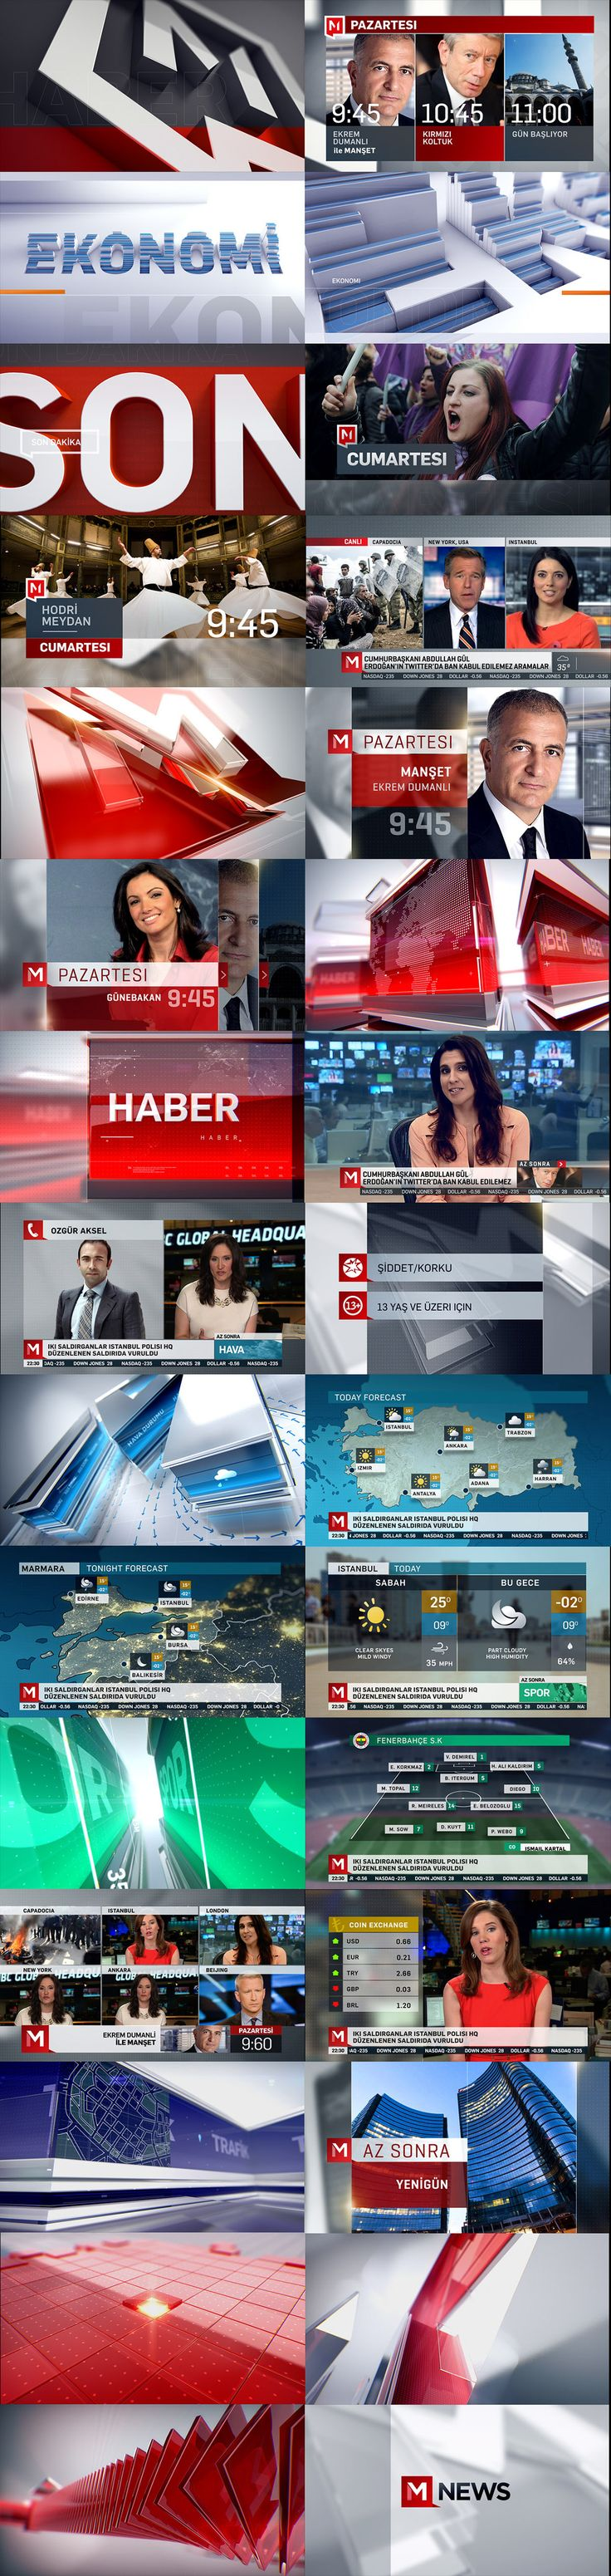 M NEWS NETWORK on Behance